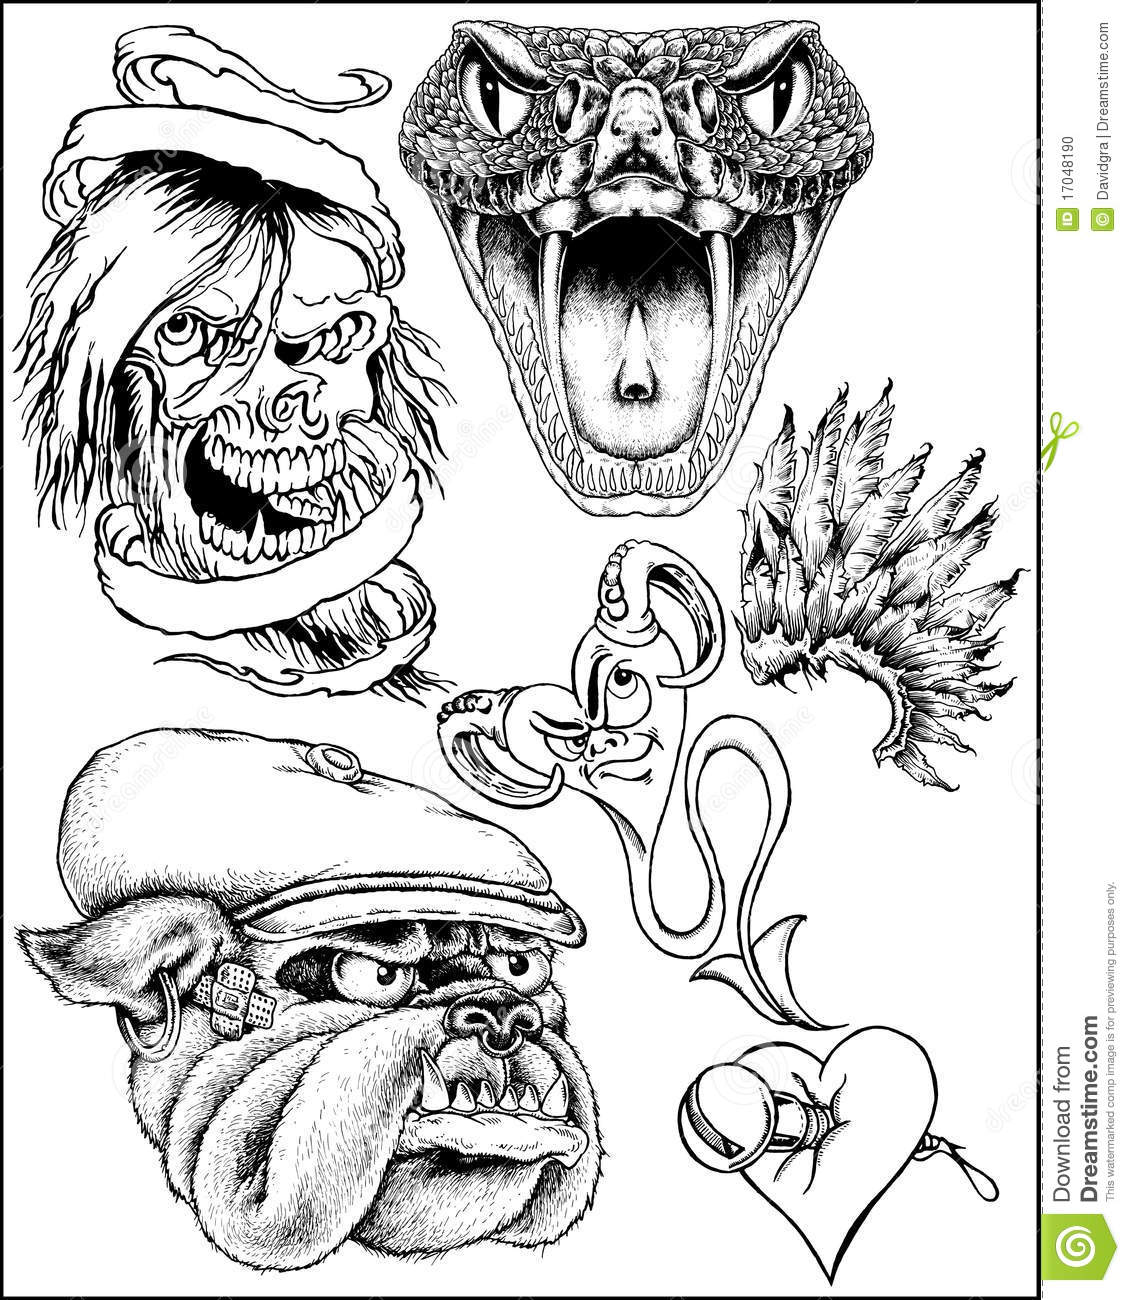 Tribal wolf furthermore Horror Vector Pack besides Stock Illustration Arizona Word Old English Calligraphy Calligraphic Gothic Font Distressed Image42572792 moreover Stock Photo Fantasy Sketches Image17048190 additionally Clown Drawings In Pencil. on scary black hand